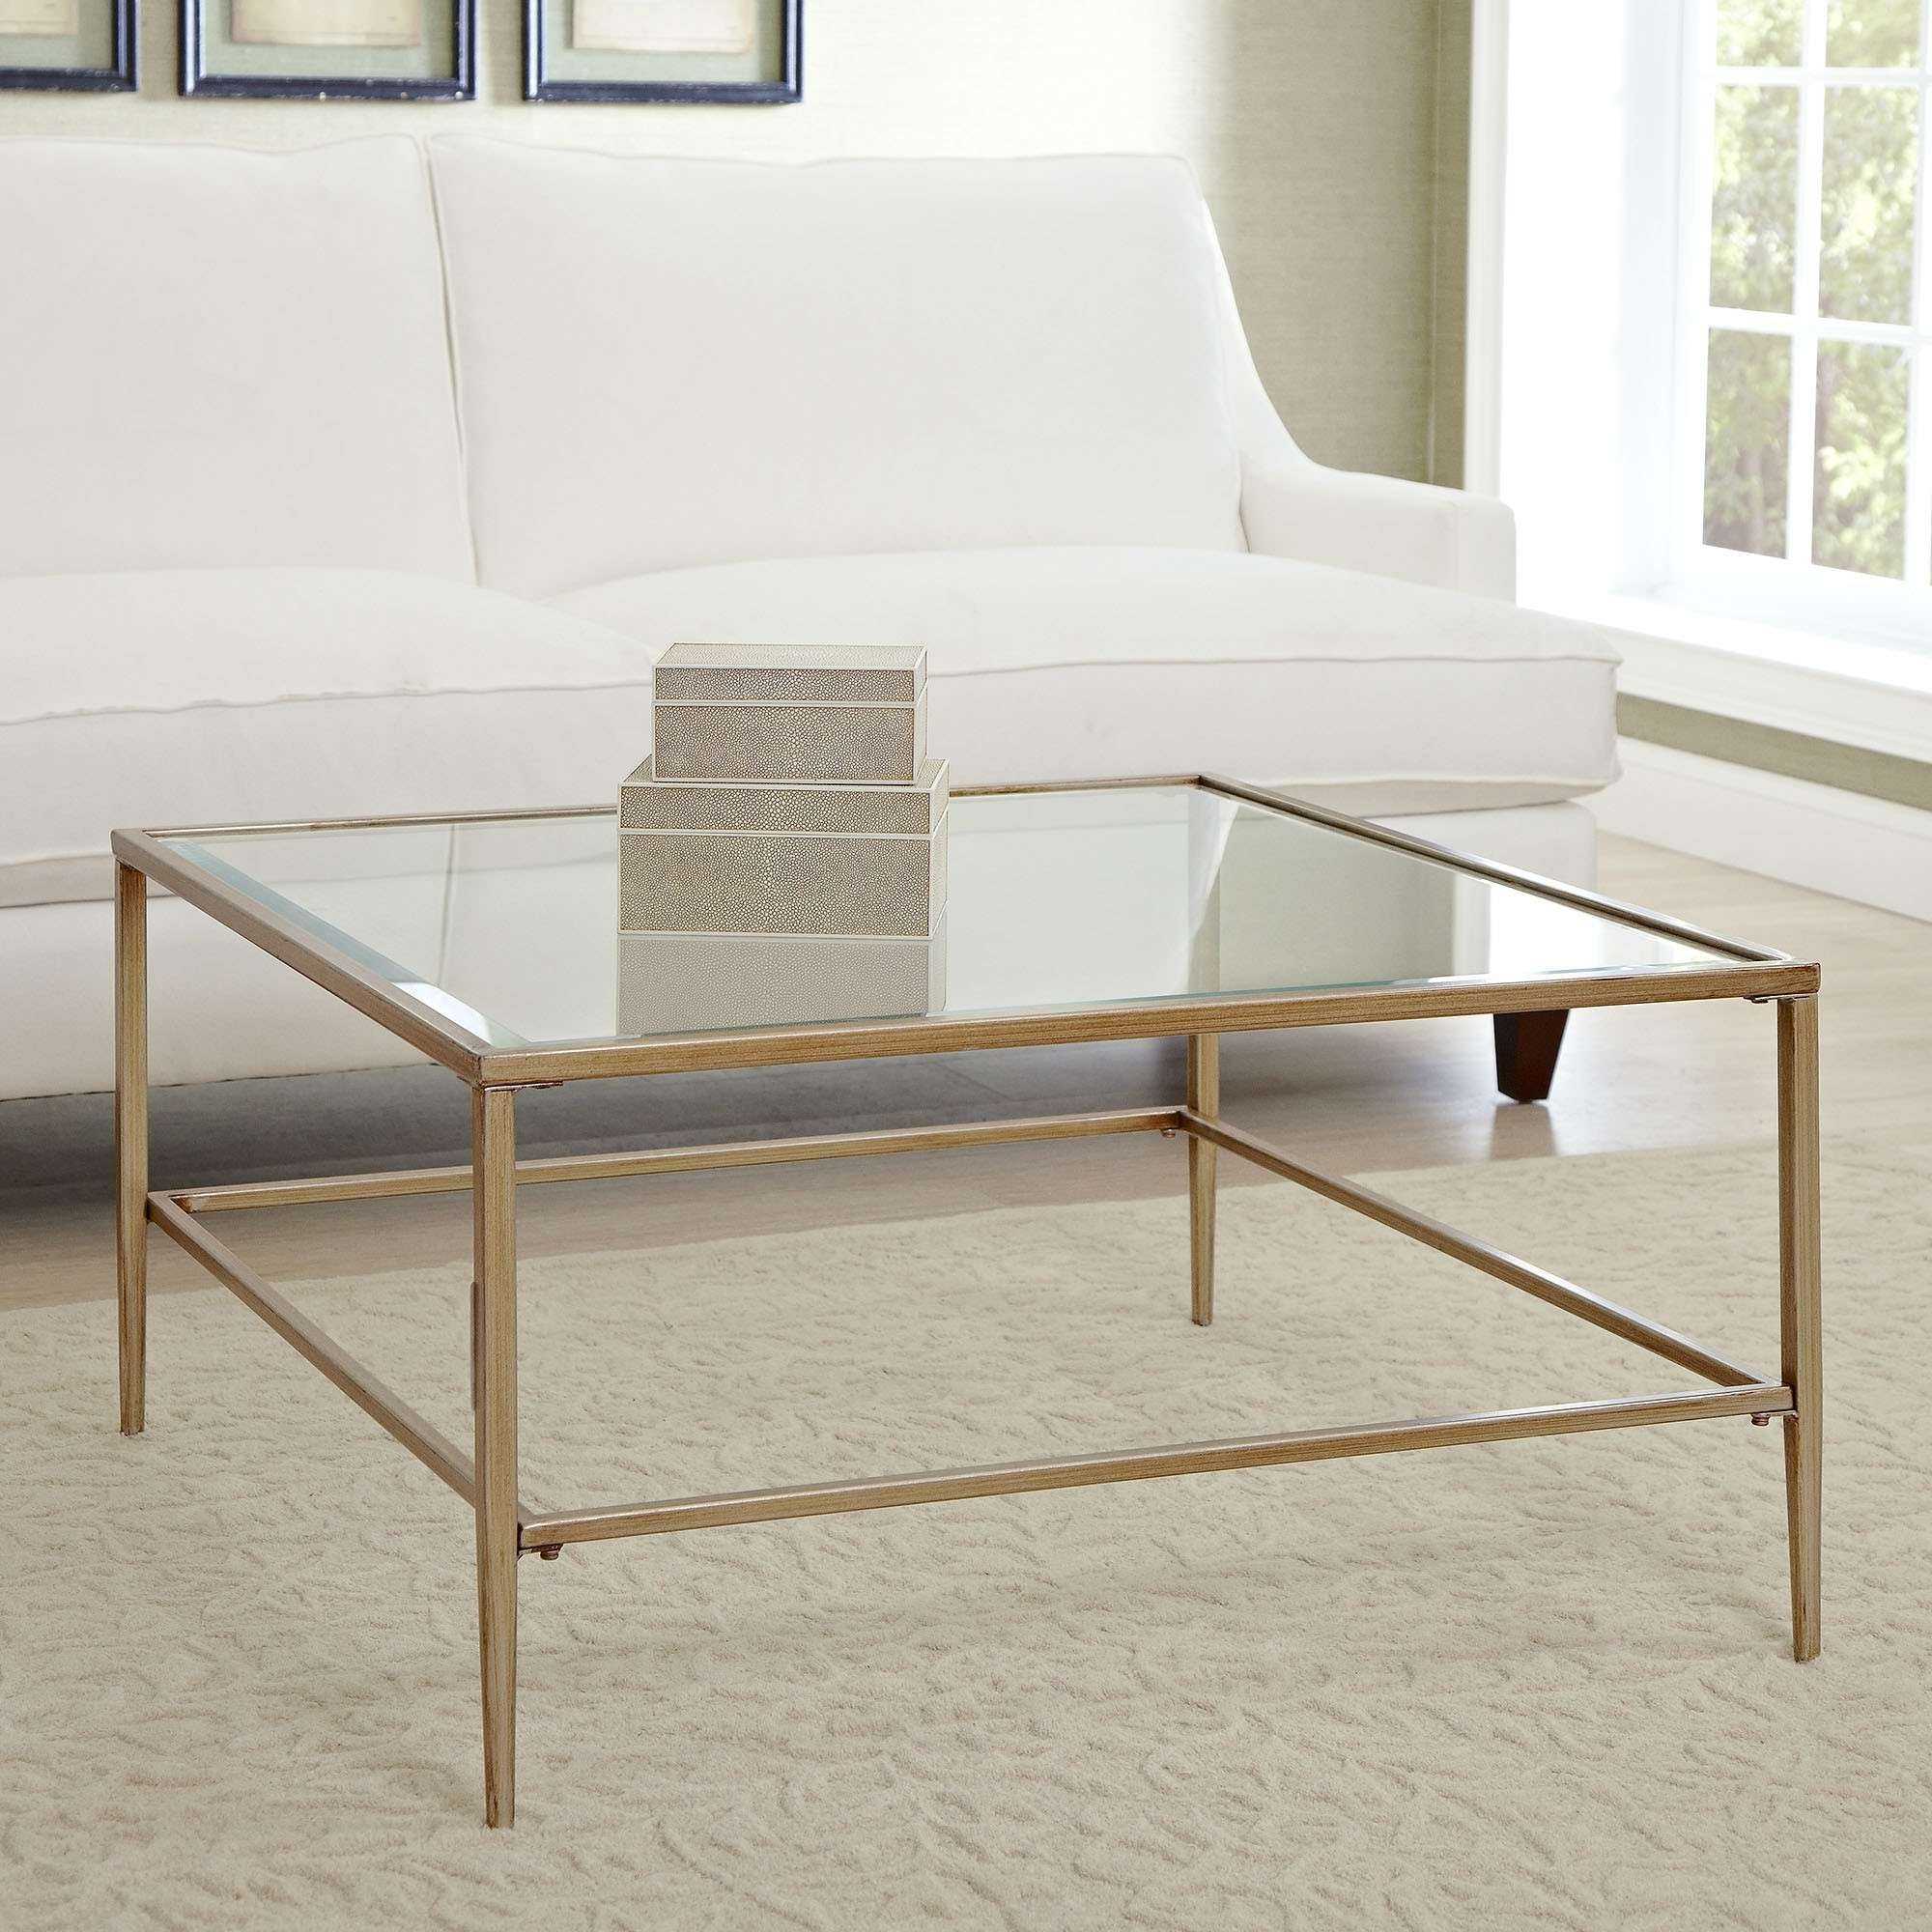 Current Wayfair Coffee Tables With Coffee Table : Wayfair Coffee Tables Table Marvelous White Wash (View 5 of 20)